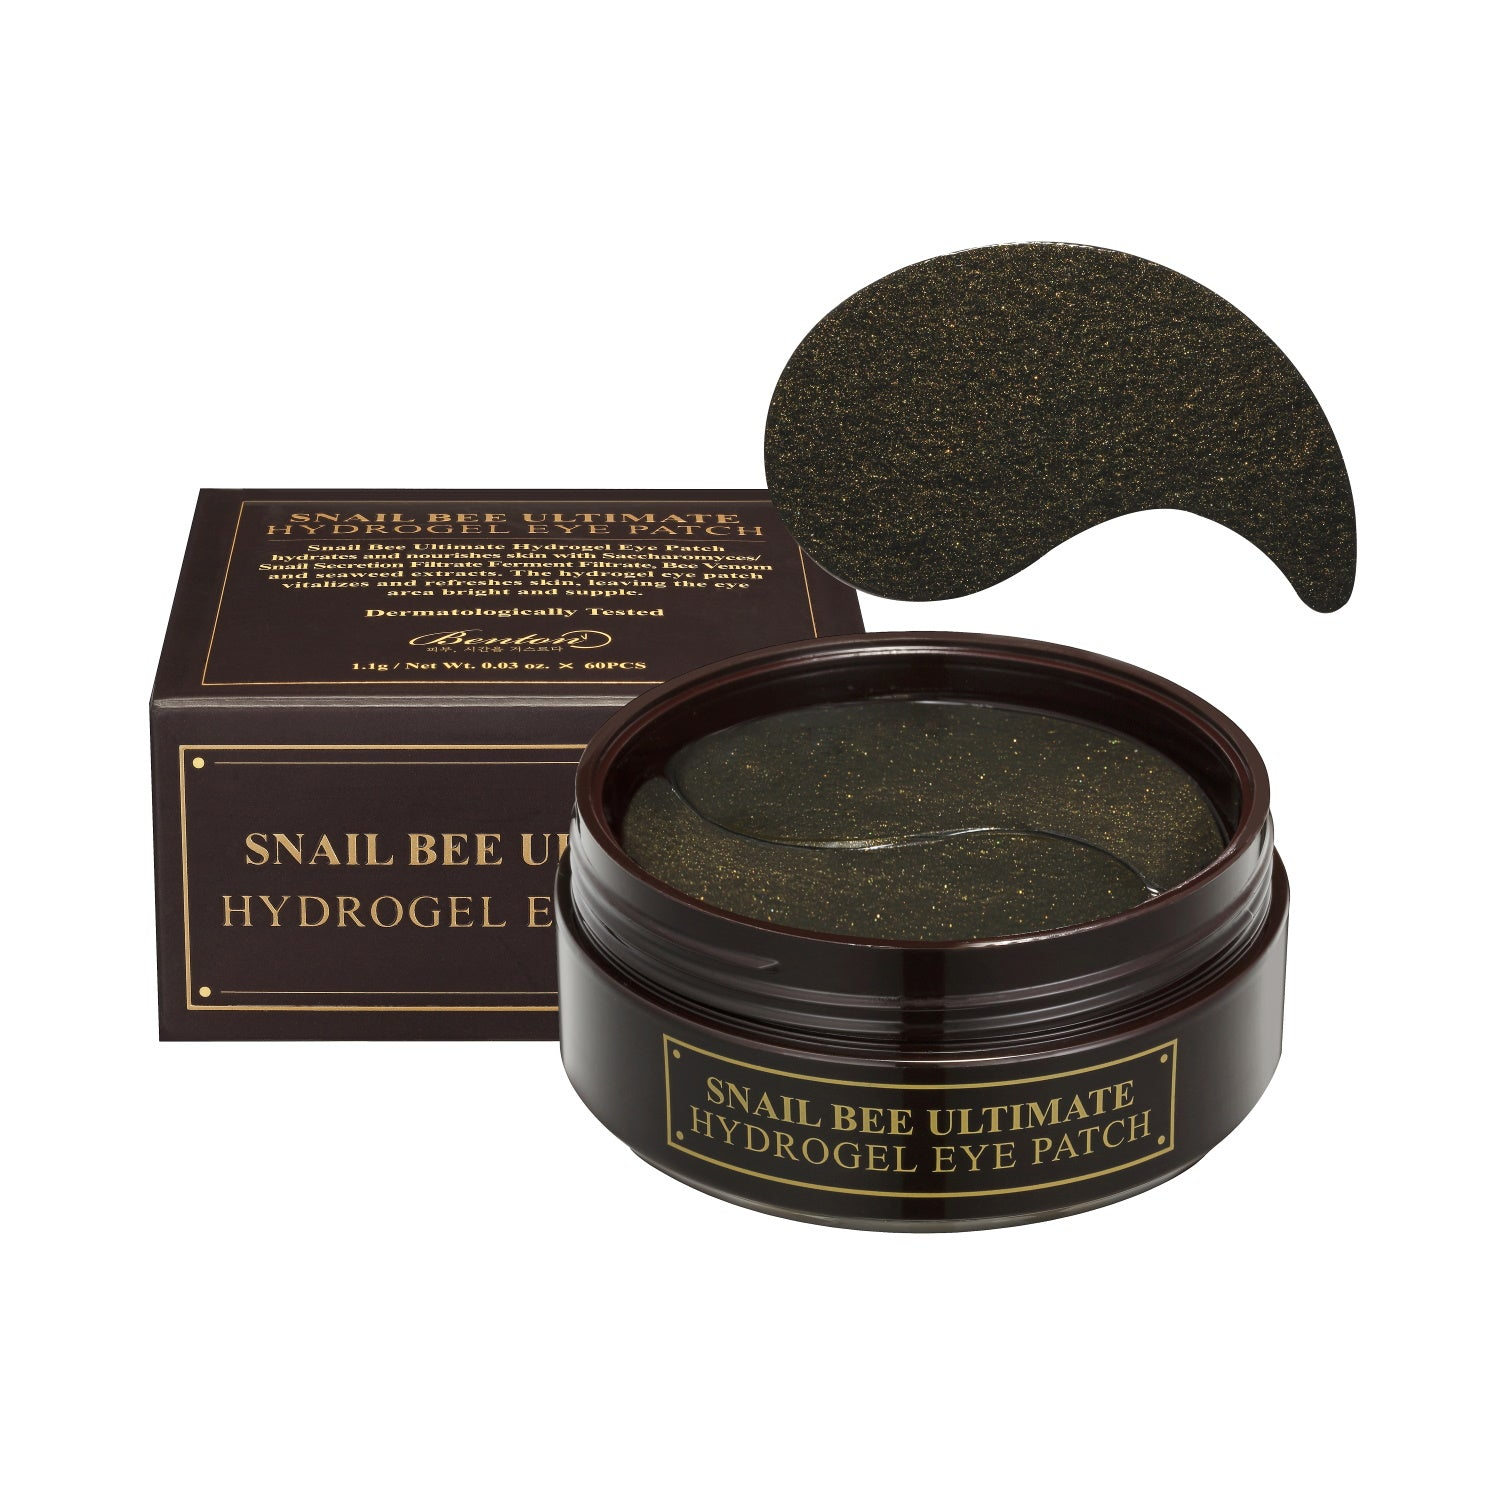 Snail Bee Ultimate Hydrogel Eye Patch - Peau Peau Beauty